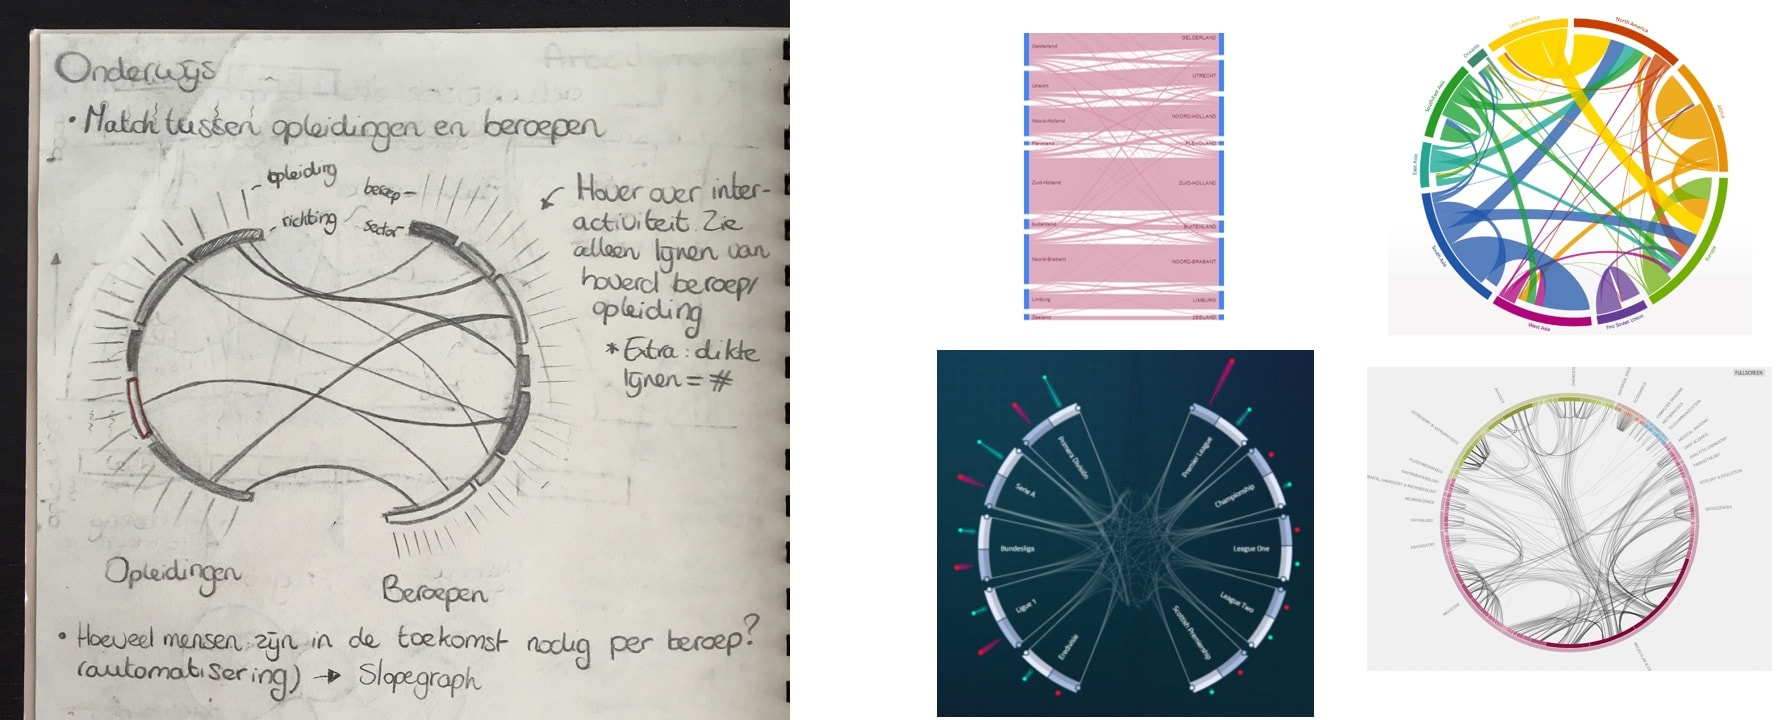 Hacking A Chord Diagram To Visualize Flow Visual Cinnamon Learn How Read Diagrams Are Graphics That Tell The Design I Had Made And Some Images Pulled From Google Show Few Things Used As Inspiration